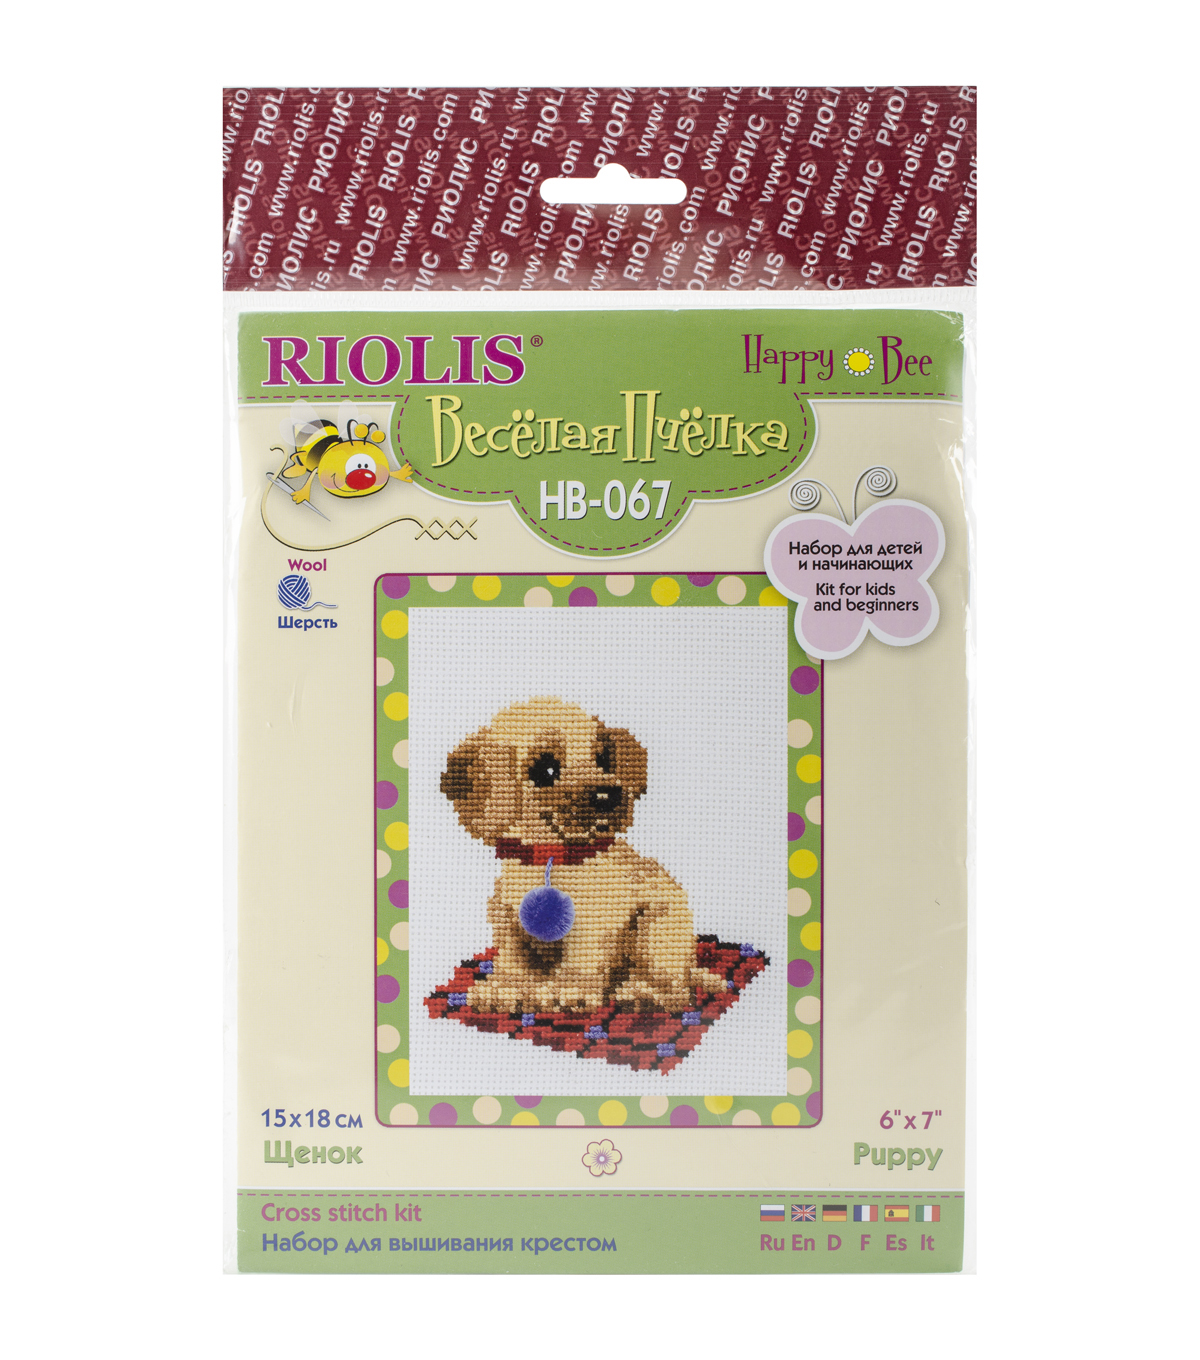 Riolis 6''x7'' Counted Cross Stitch Kit-Puppy